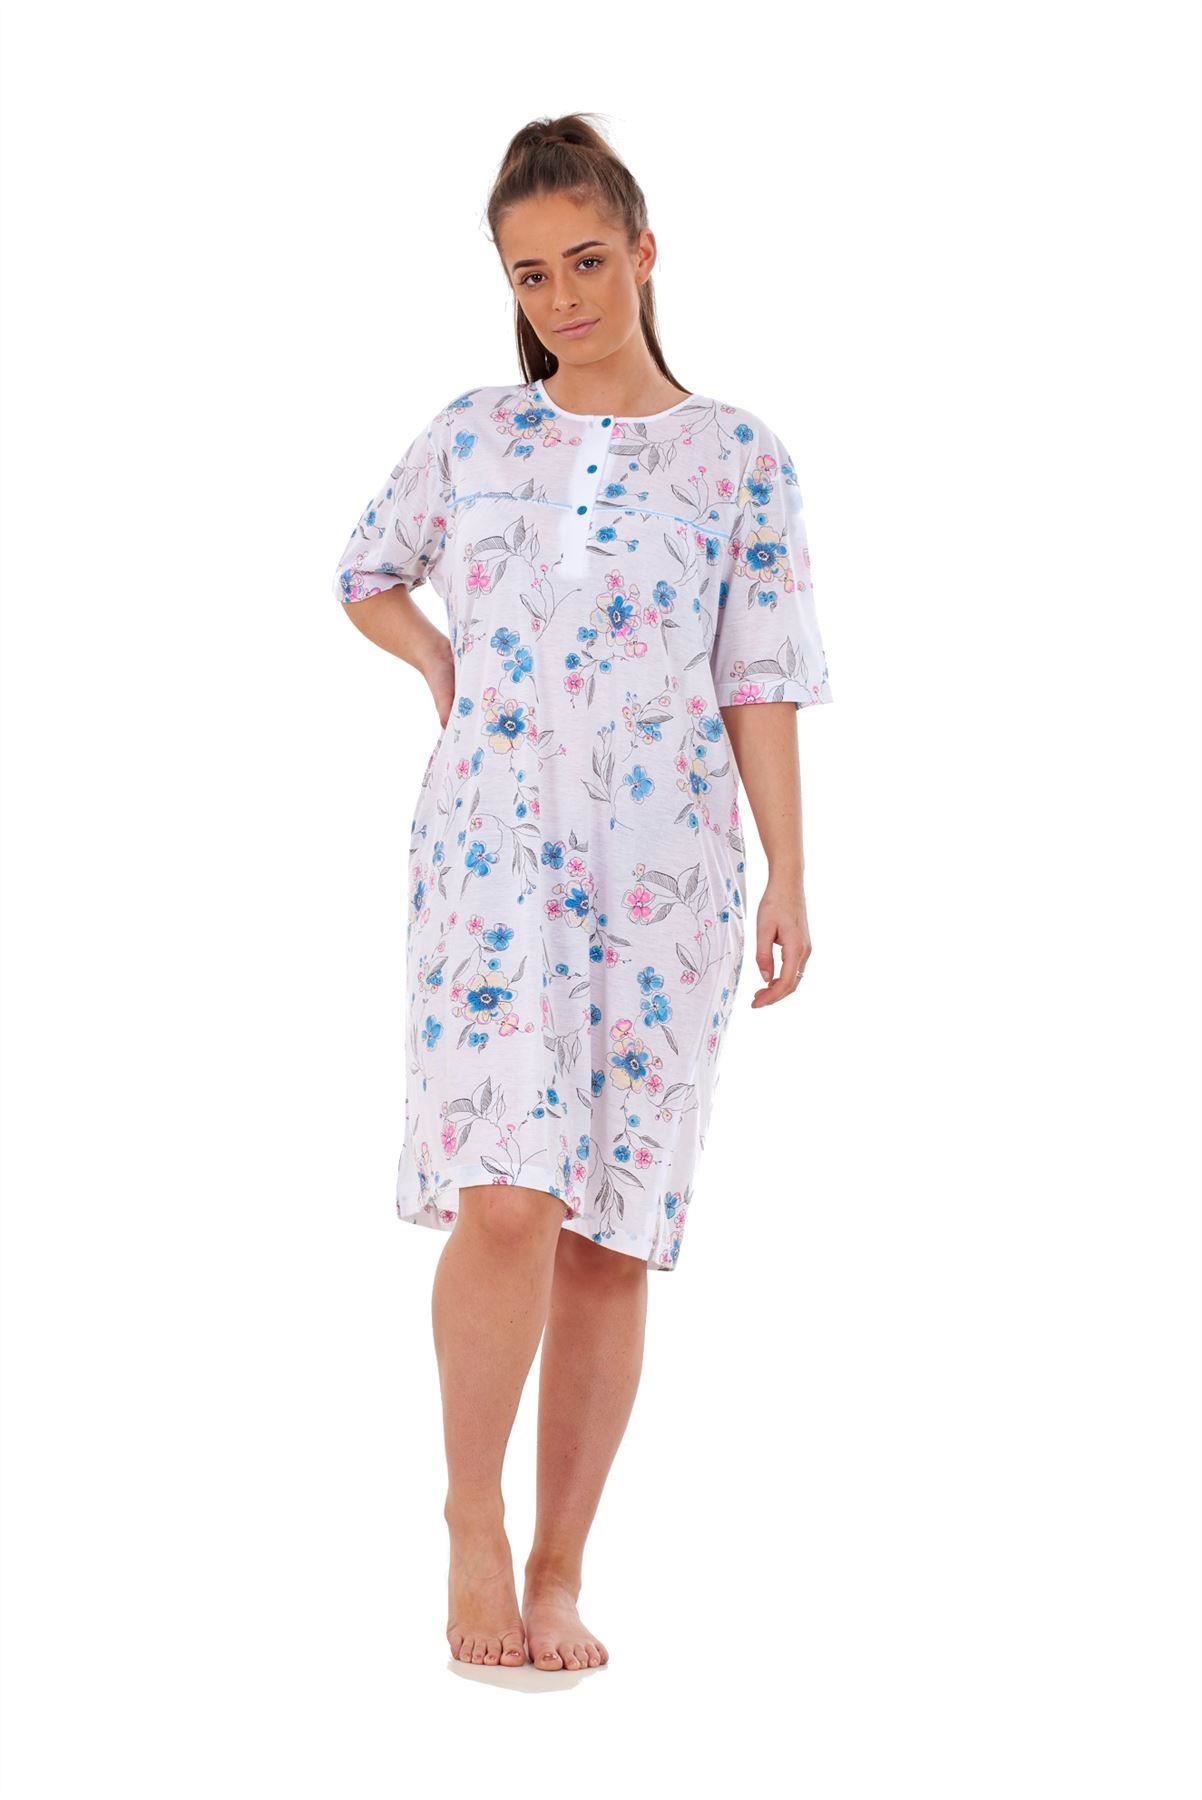 Ladies Nightwear 100/% Cotton Short Sleeve button Blue Floral Nightshirt M to 3XL